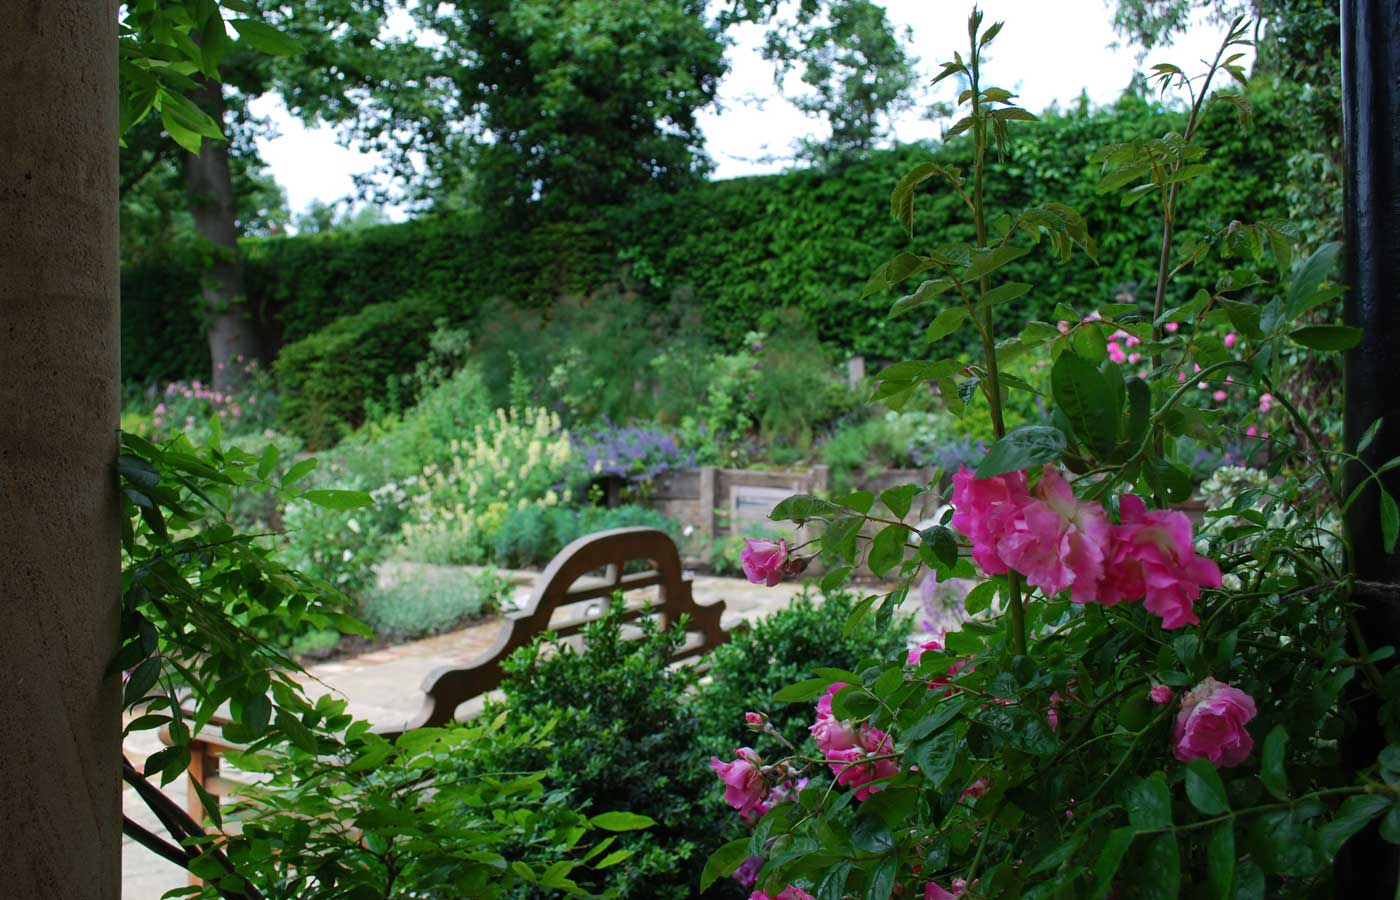 Diana milner garden design beautiful garden designs for Beautiful garden layouts